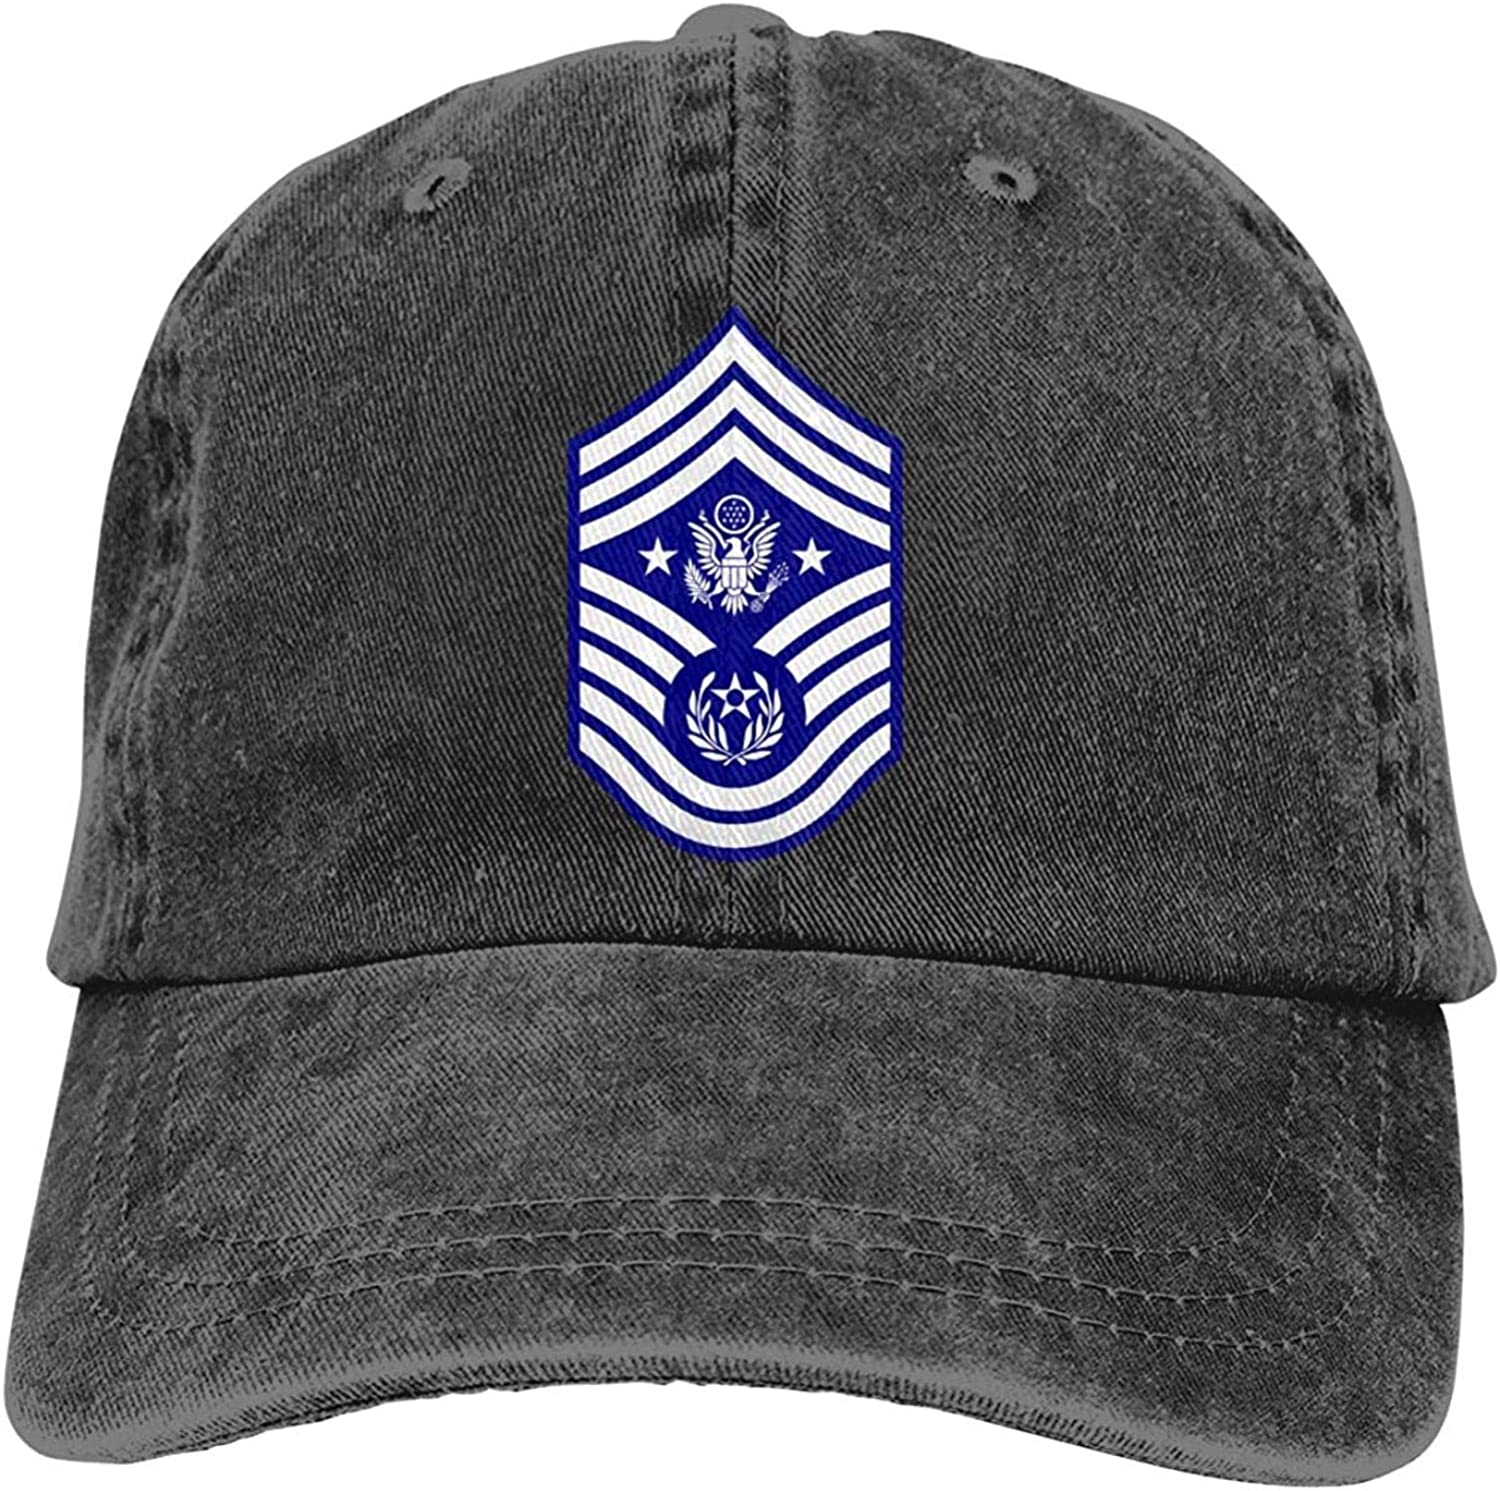 Zdsg USAF SSI Pacific Air Forces Dad Hat Unisex Cotton Hat Adjustable Baseball Cap